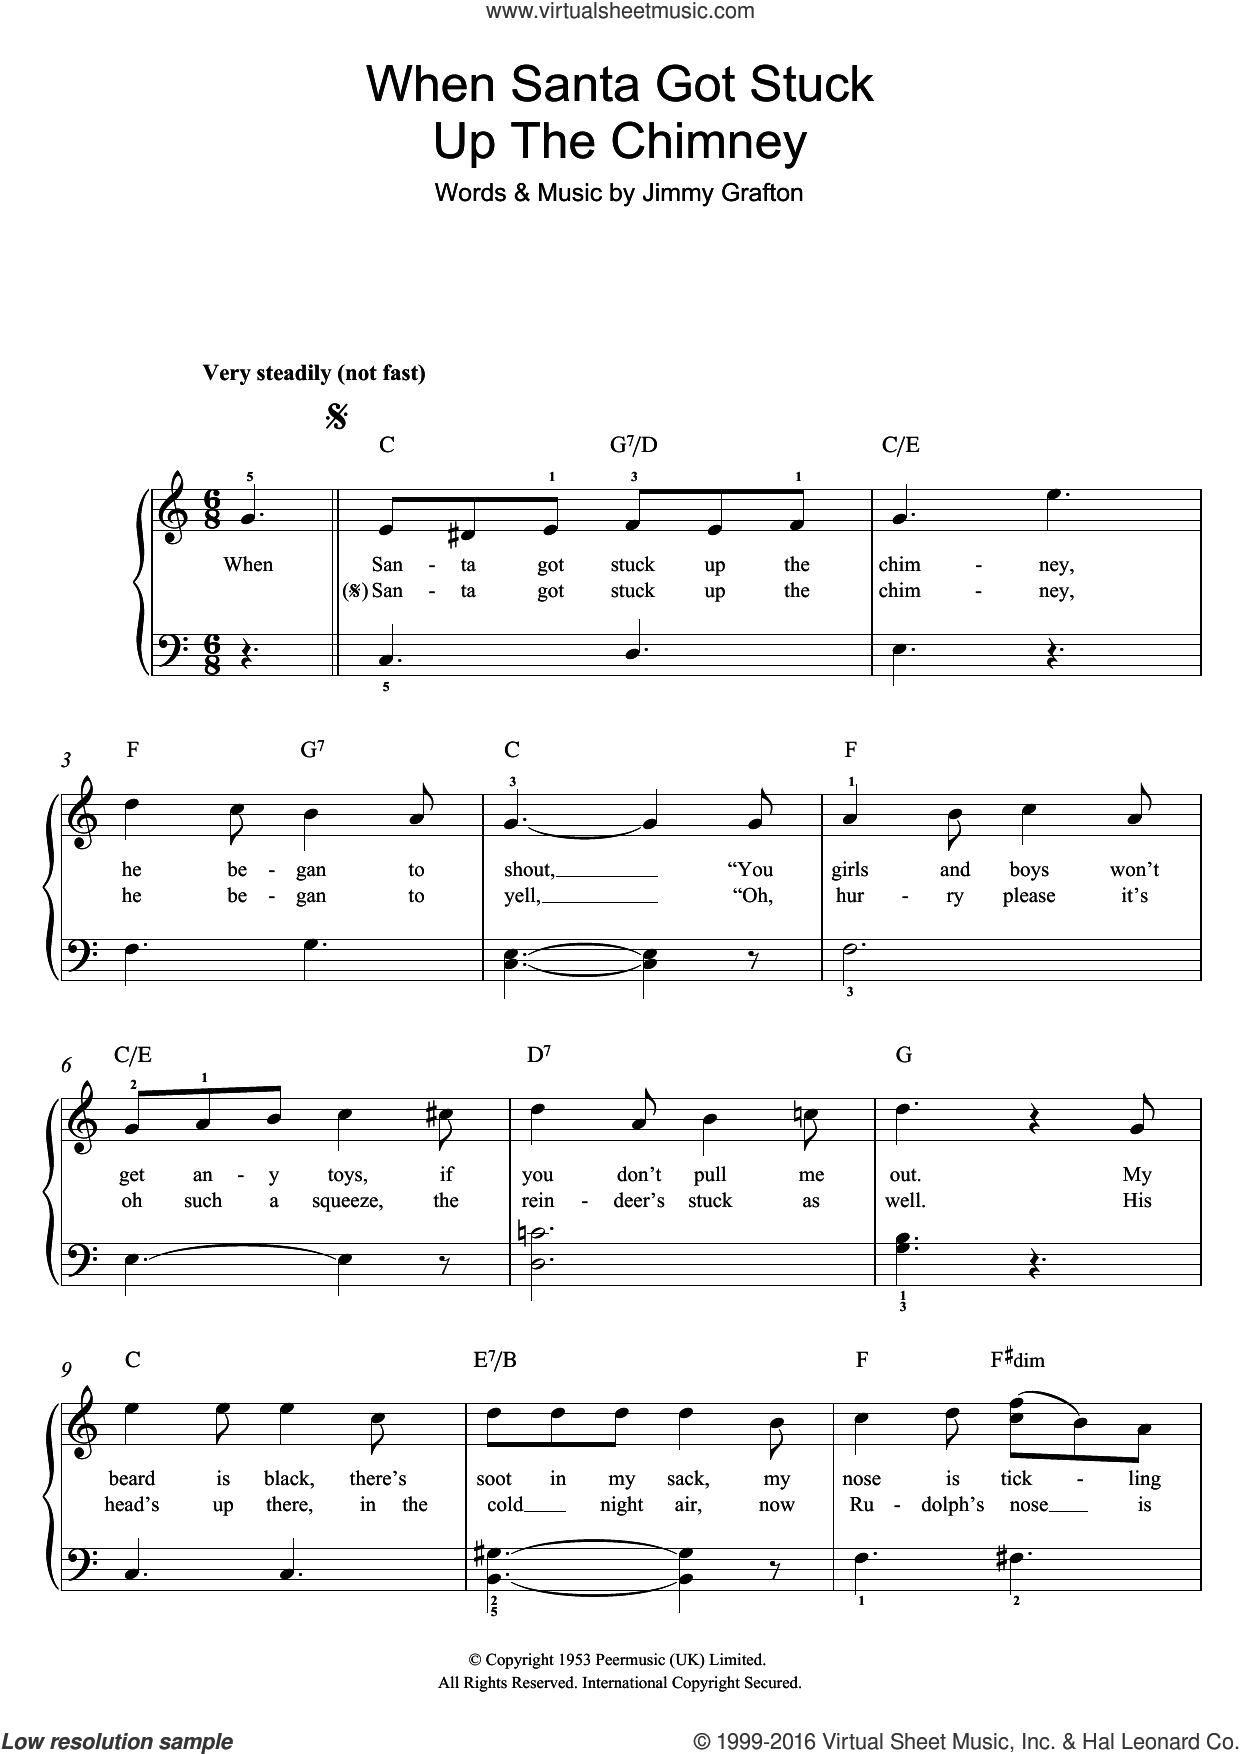 When Santa Got Stuck Up The Chimney sheet music for piano solo by Jimmy Grafton, easy skill level